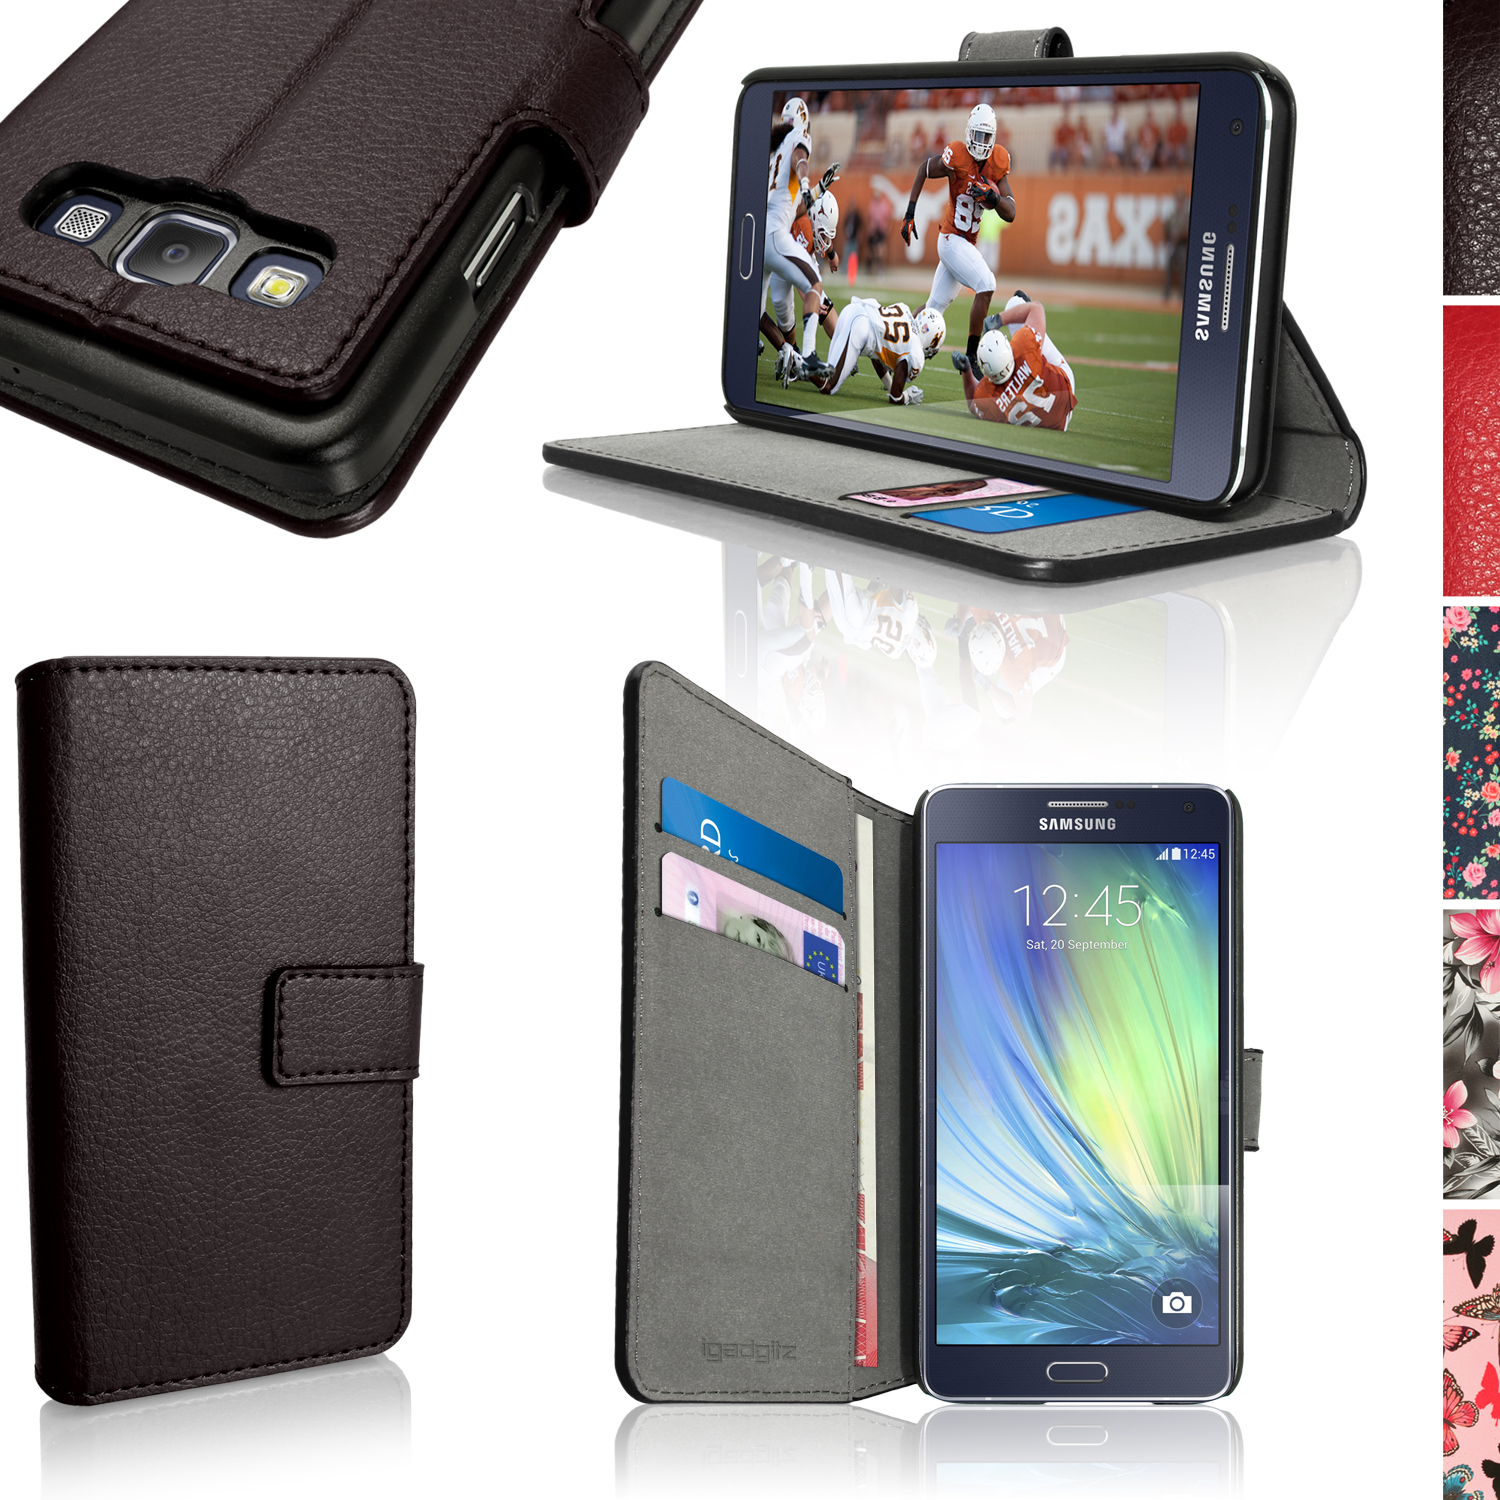 iGadgitz Wallet Flip PU Leather Case for Samsung Galaxy A3 + Card Slots + Multi-Angle Viewing Stand + Magnetic Closure